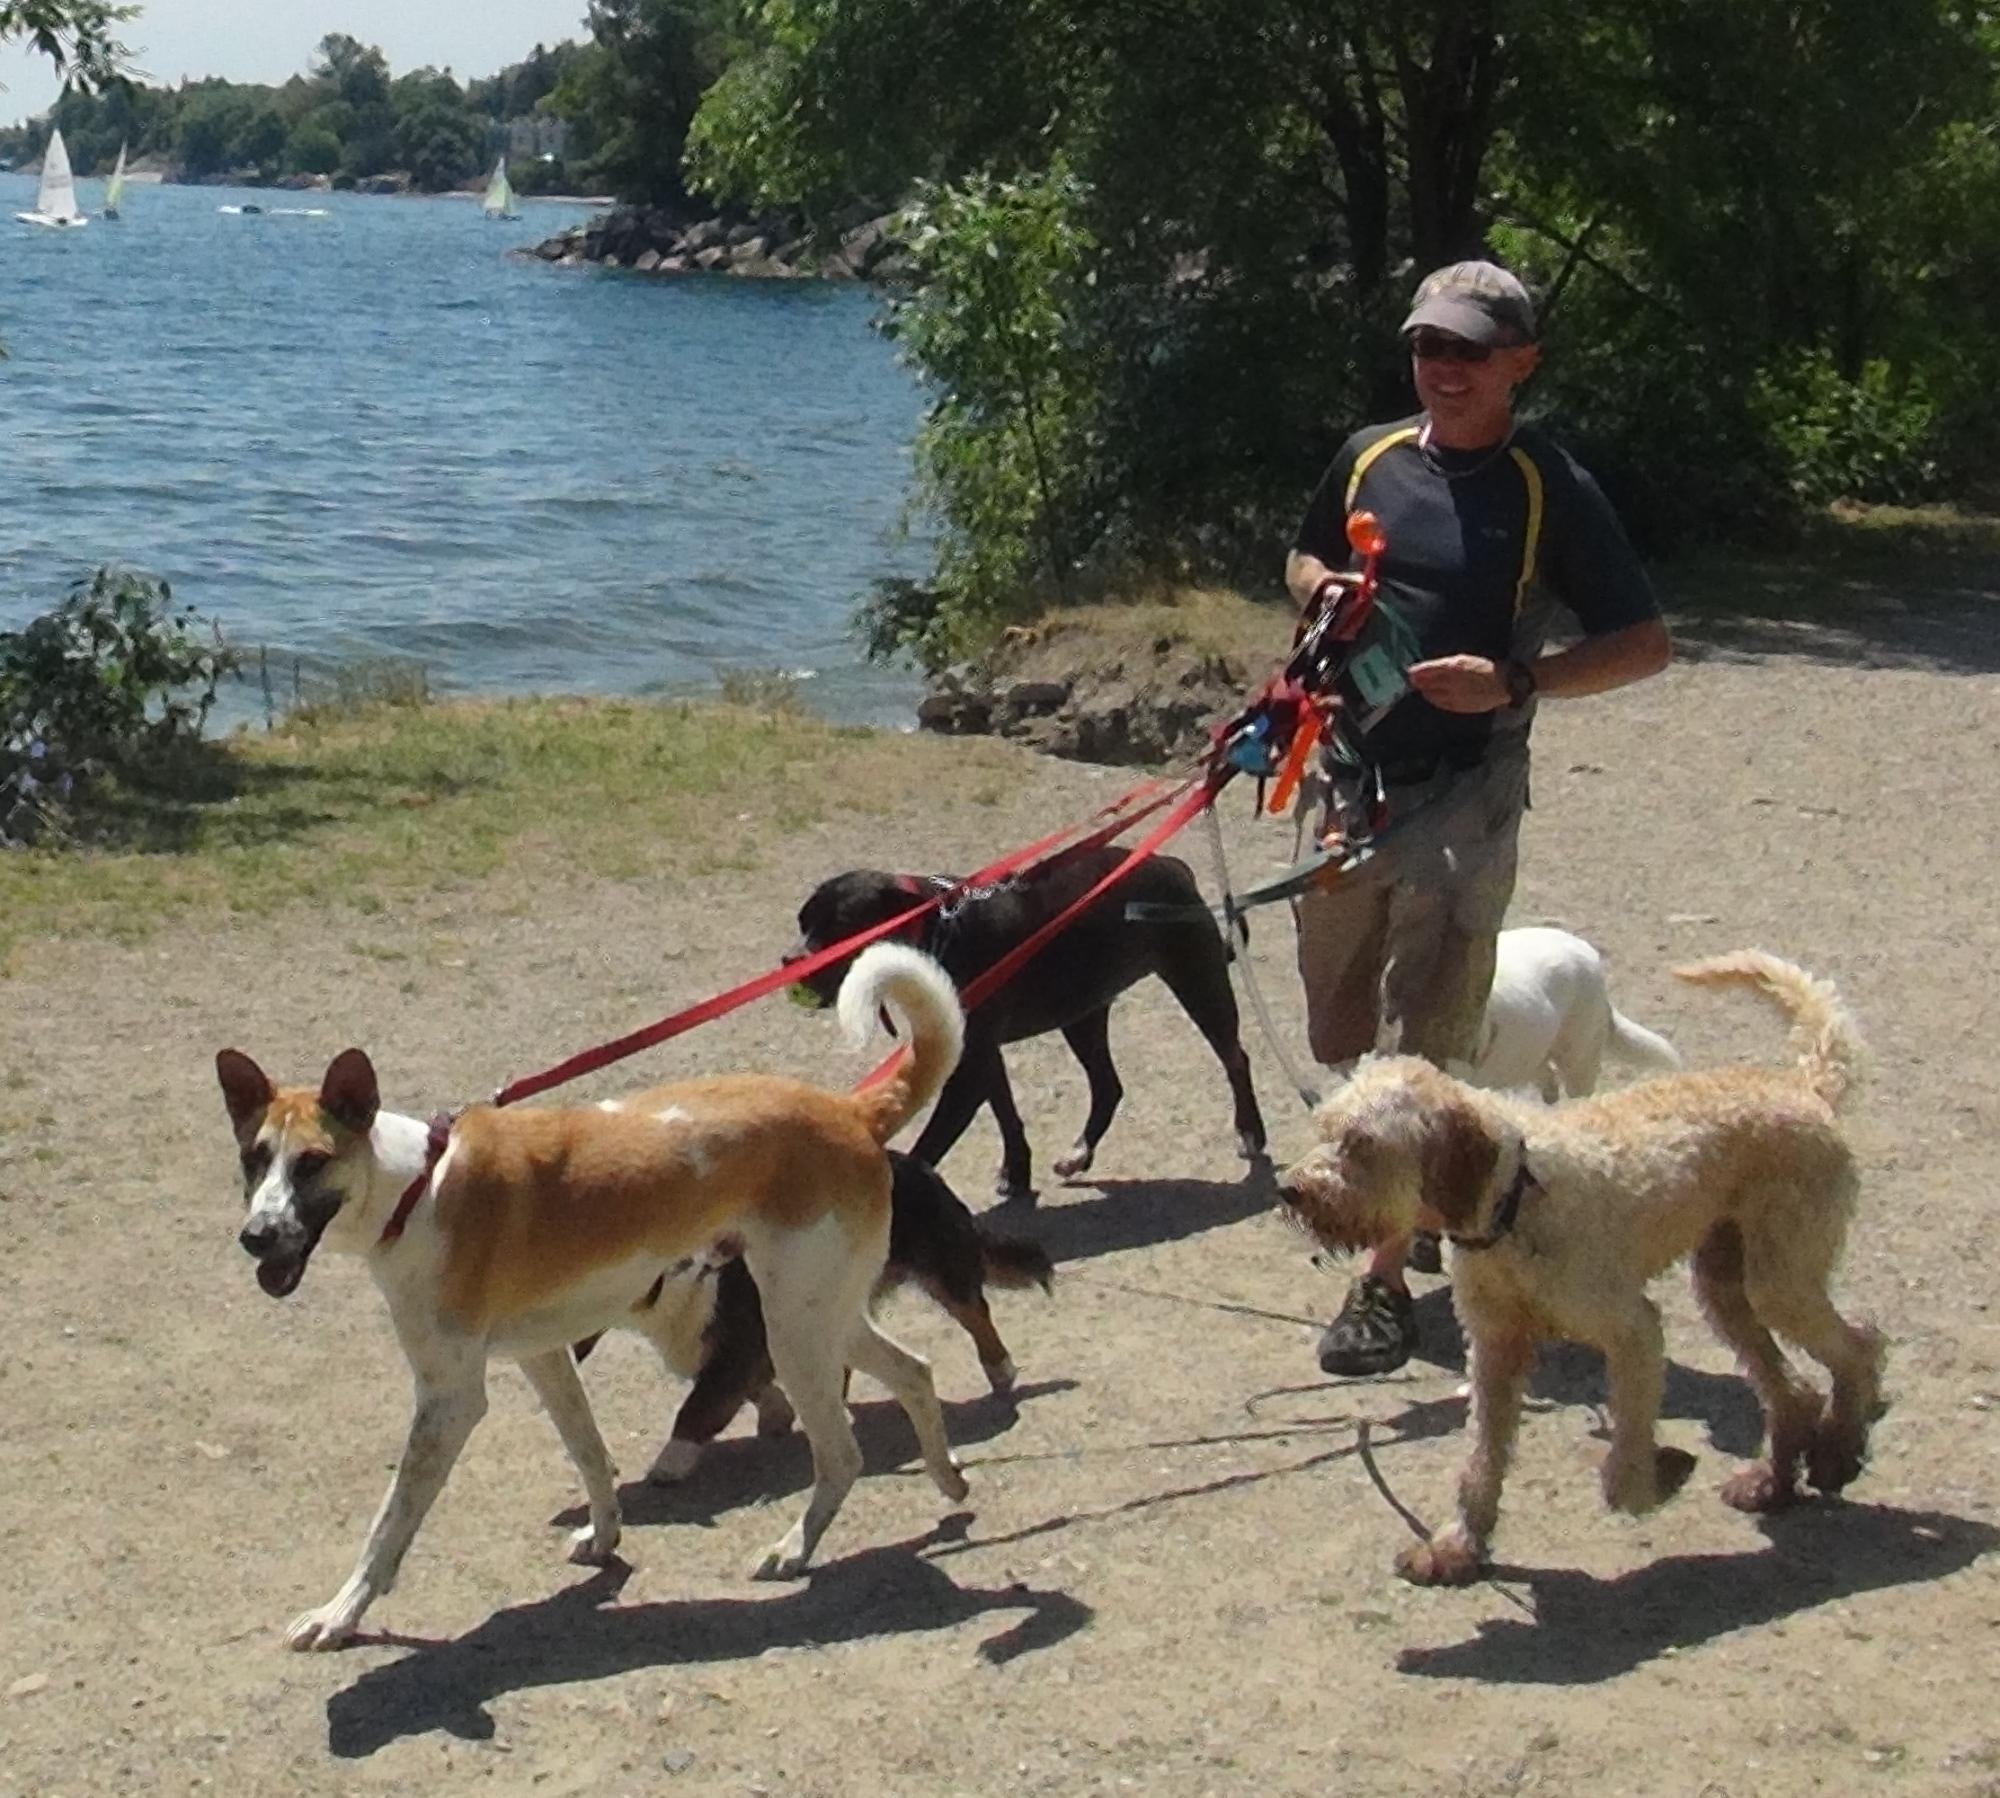 Dog-Walking-By-Lake-Ontario-Cropped-Man-With-Five-Dogs-On-Leashes.JPG